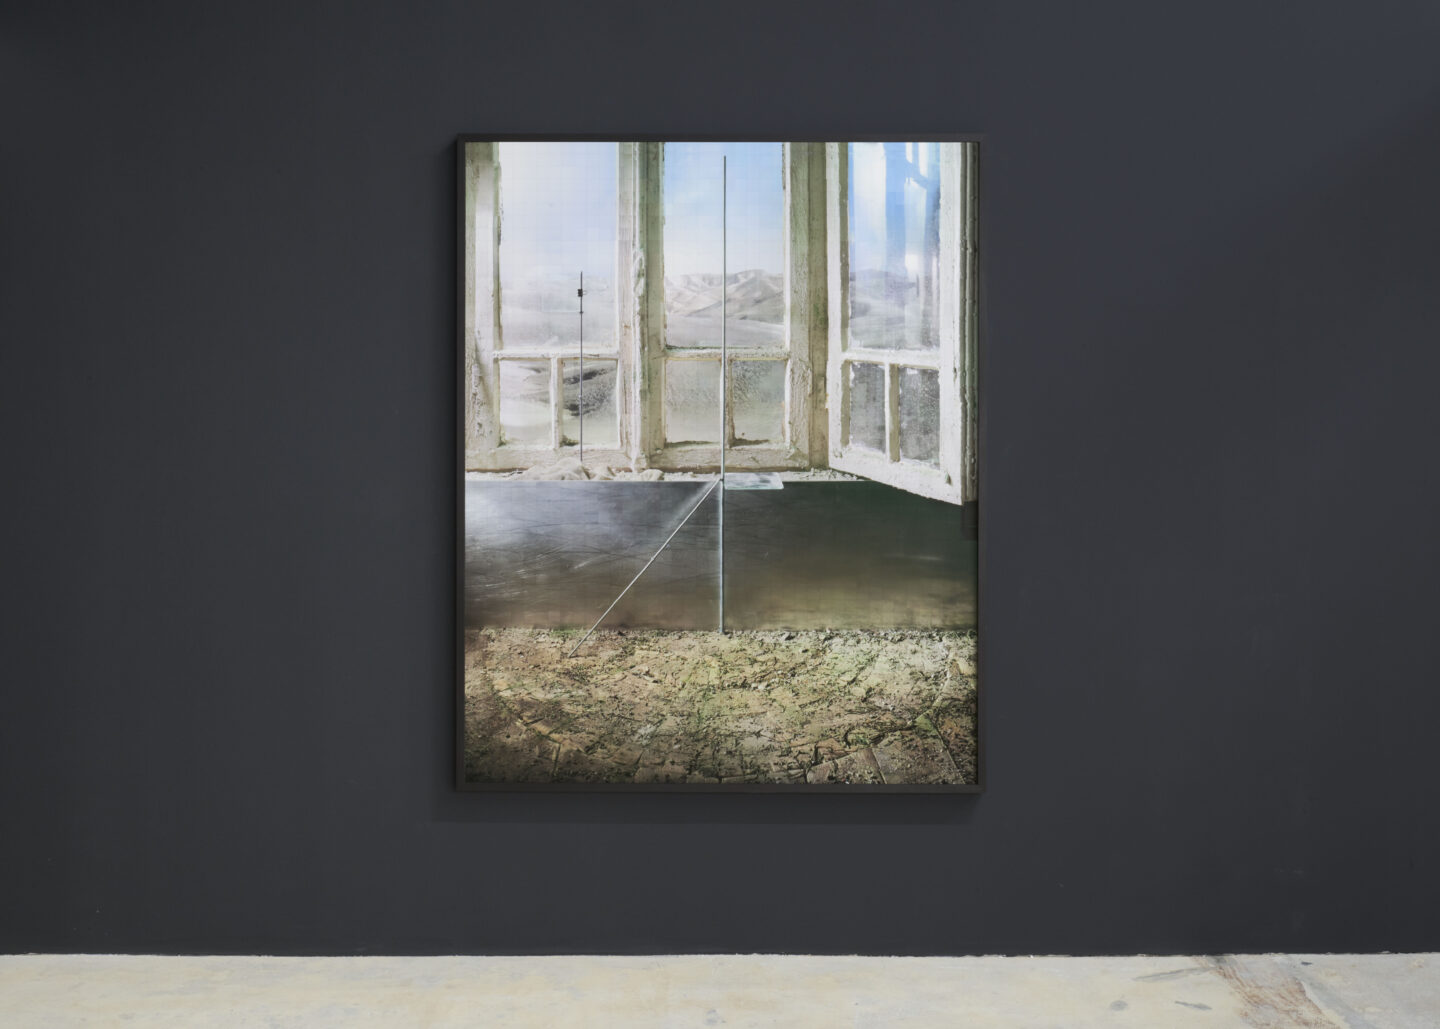 Exhibition View Yuval Yairi Soloshow «Cyphers & Cypresses; view on Objective Space, 2019» at Fabienne Levy, Lausanne, 2019 / Photo: Guillaume Baeriswyl / Courtesy: the artist and Fabienne Levy